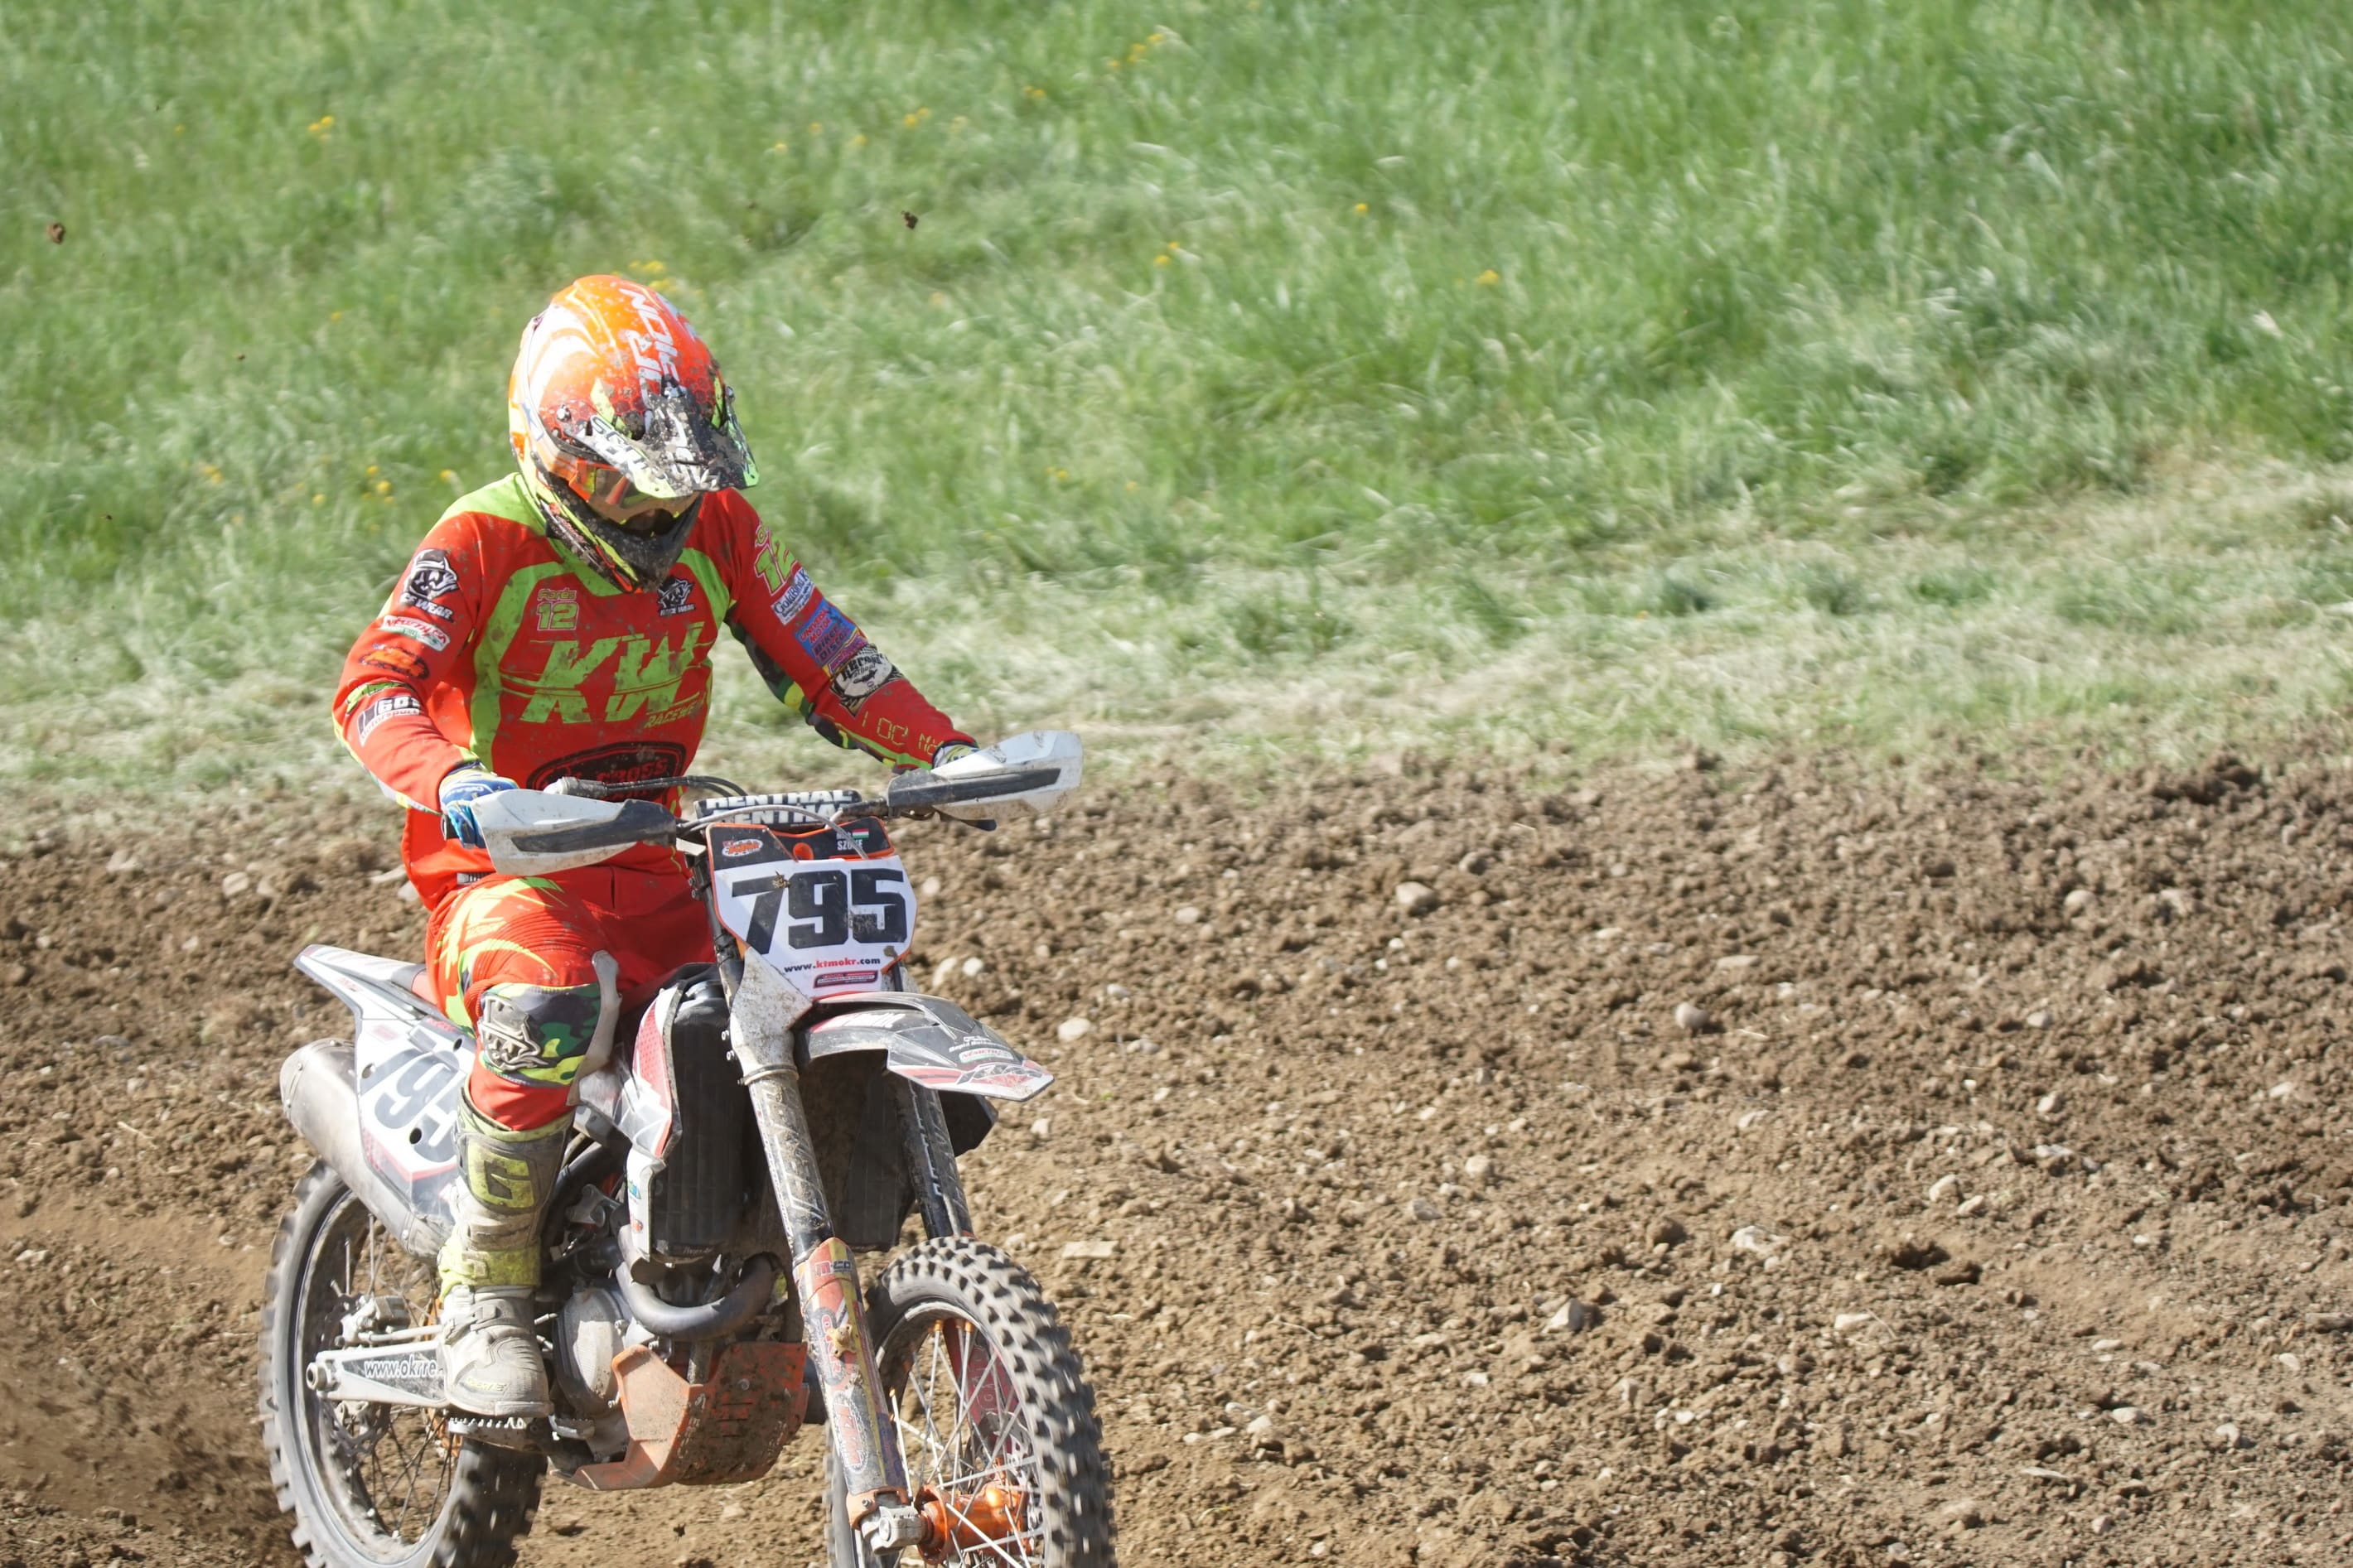 DSC 848_Moto Cross Sittendorf Teil1 am 29.04.2018